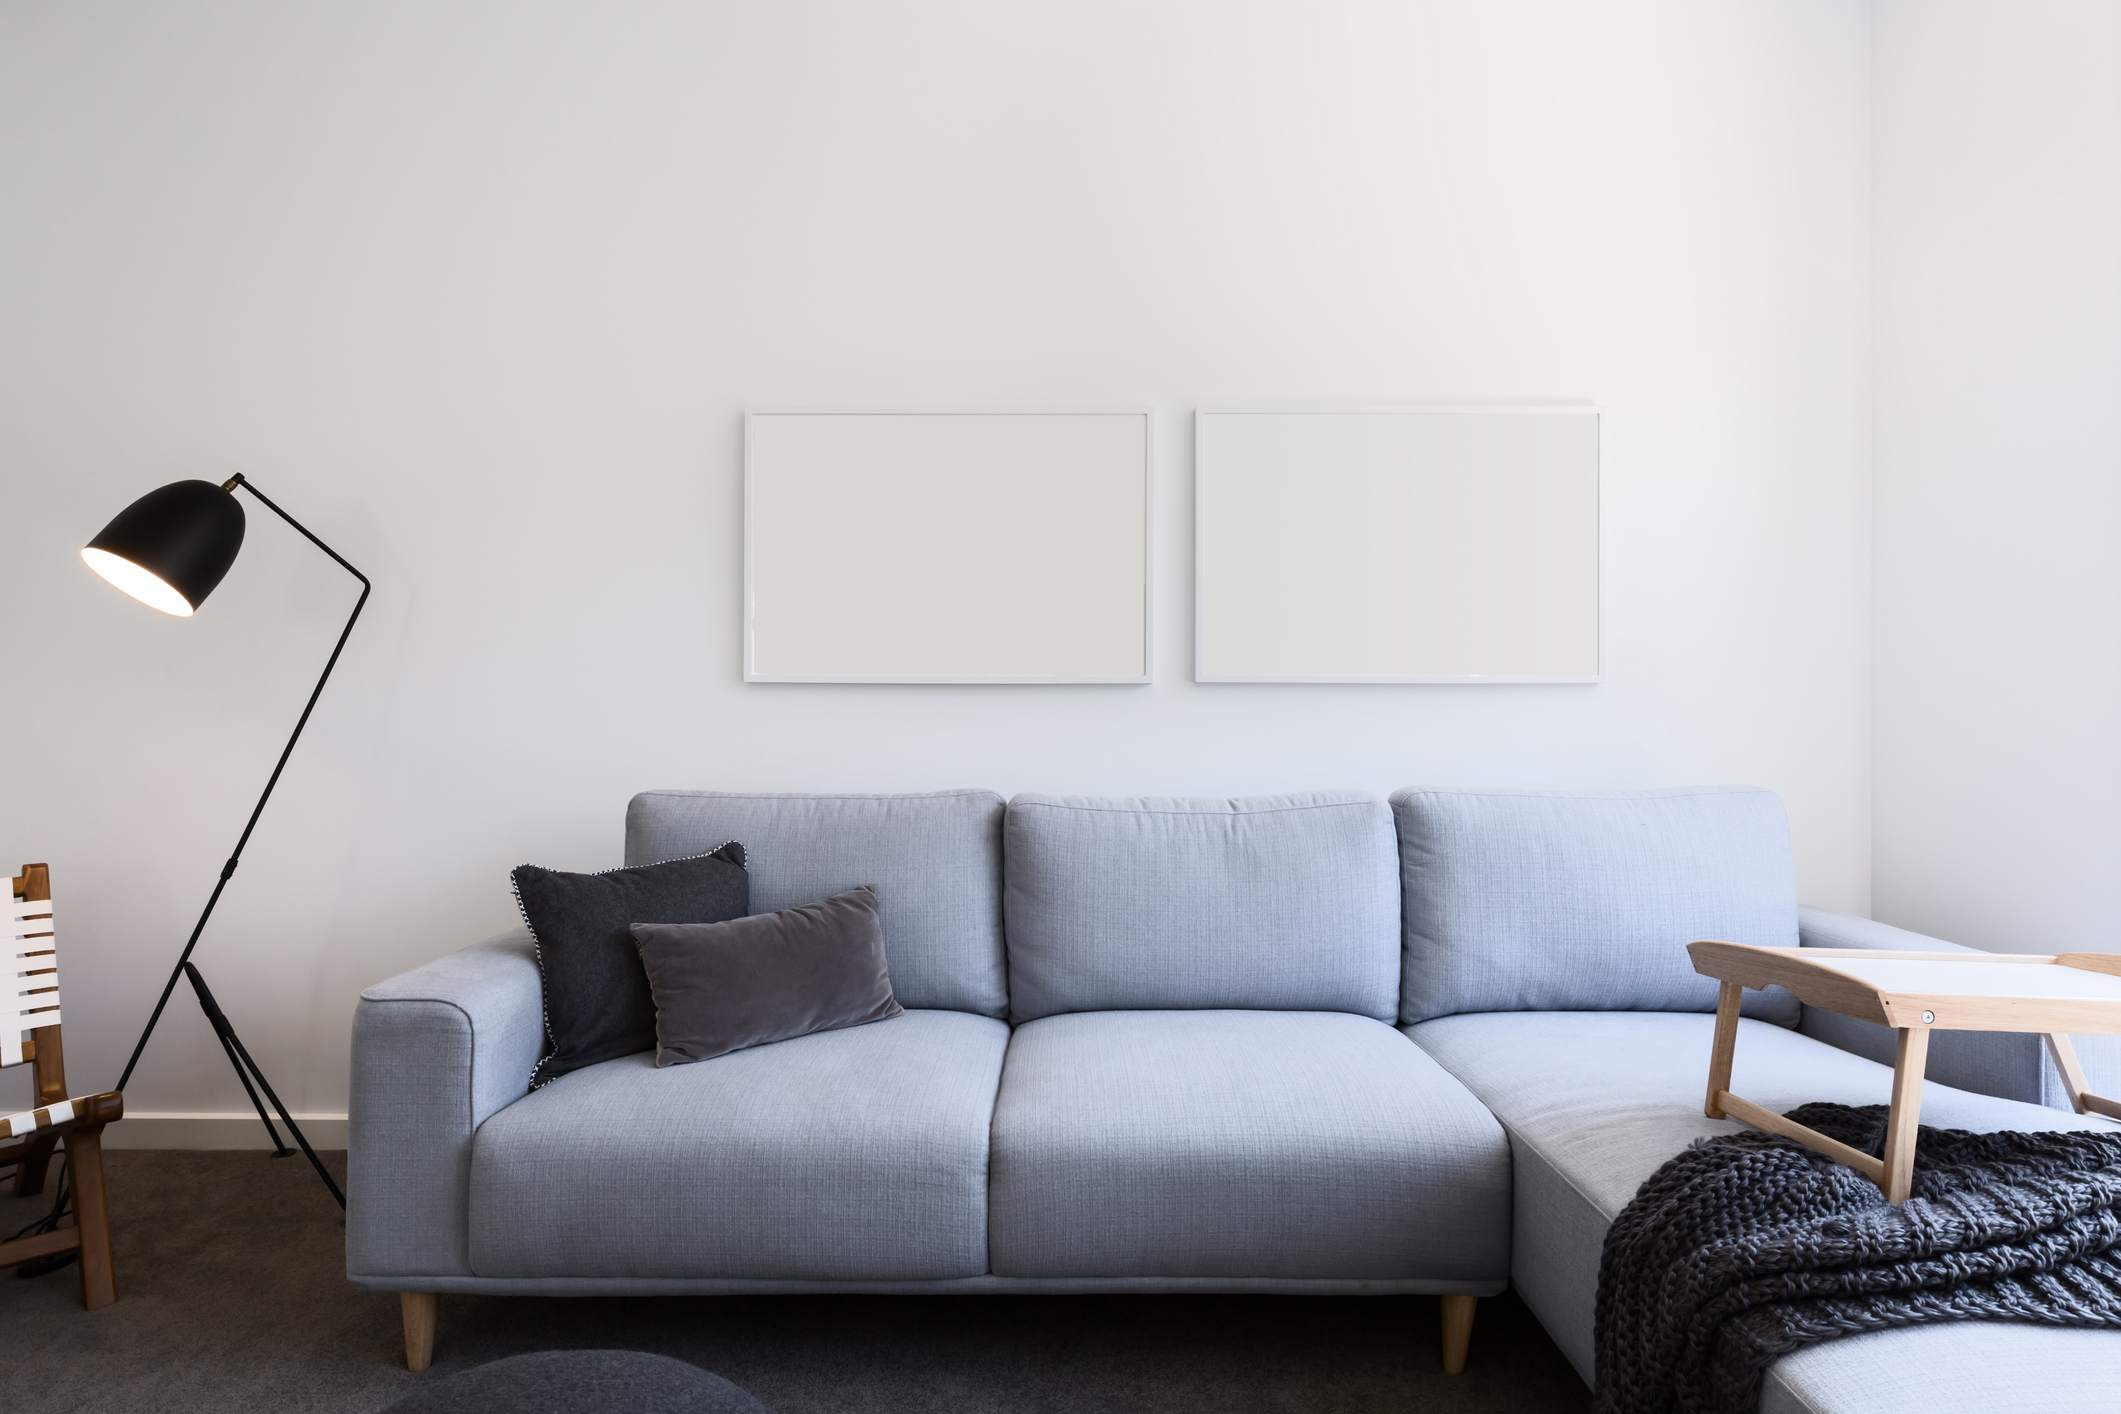 Charcoal pillows and blanket on pale blue couch